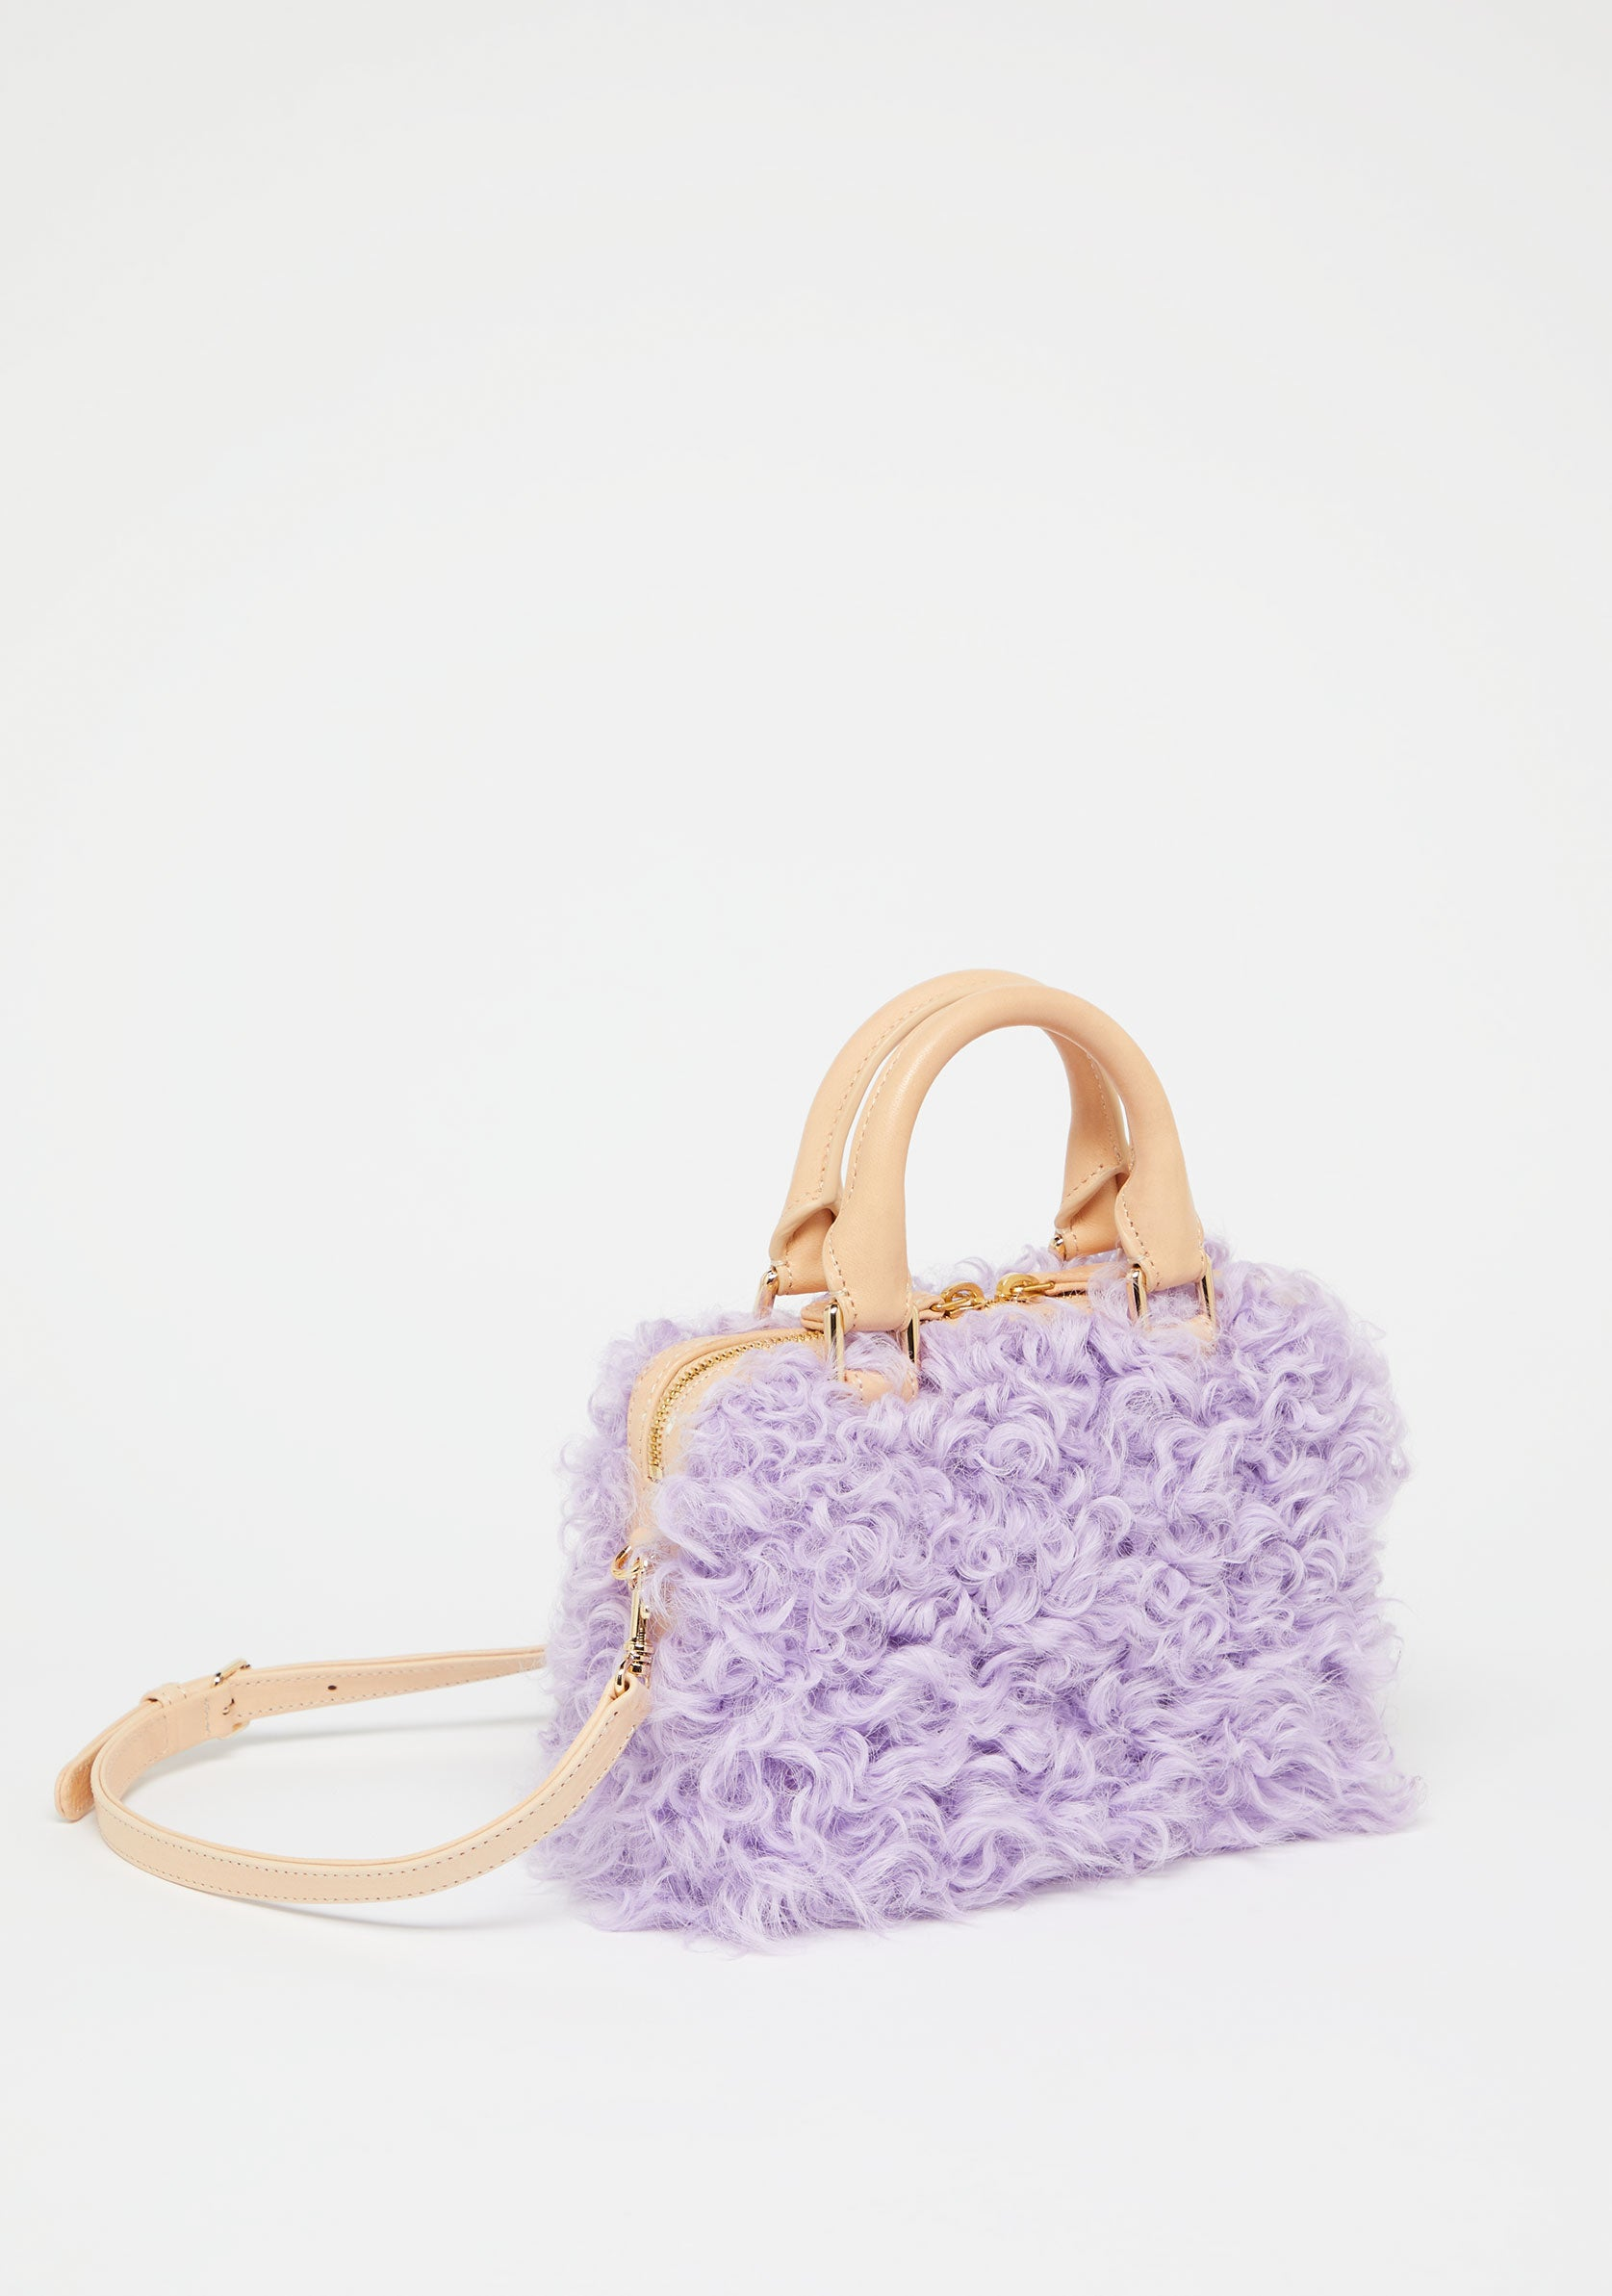 MINI ISLAND SHEARLING HANDBAG